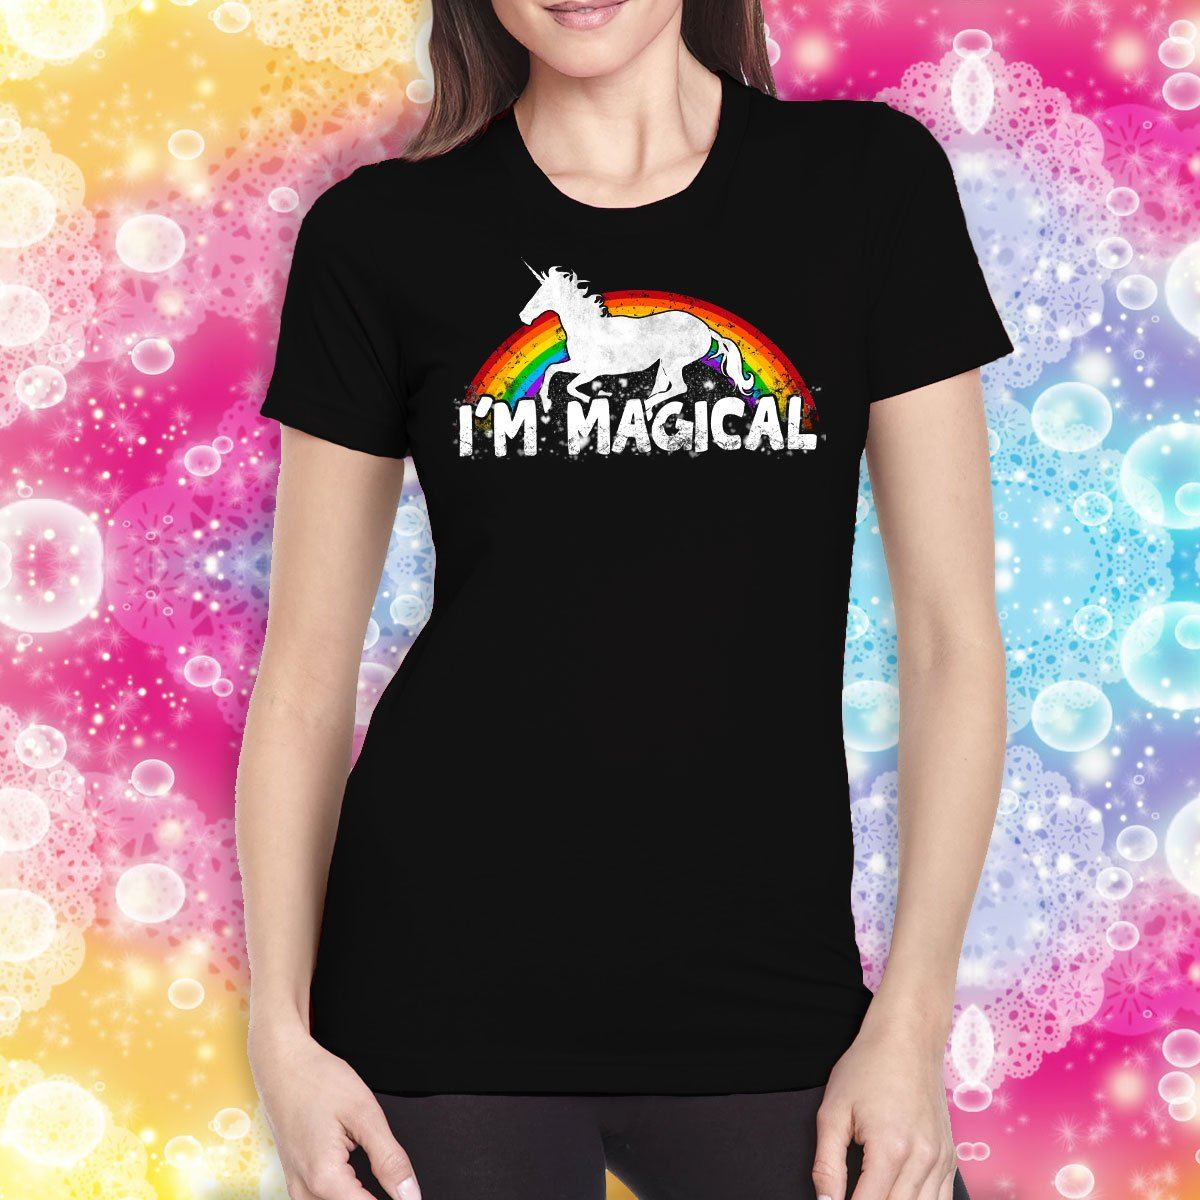 I'm Magical Ladies' T-Shirt Apparel